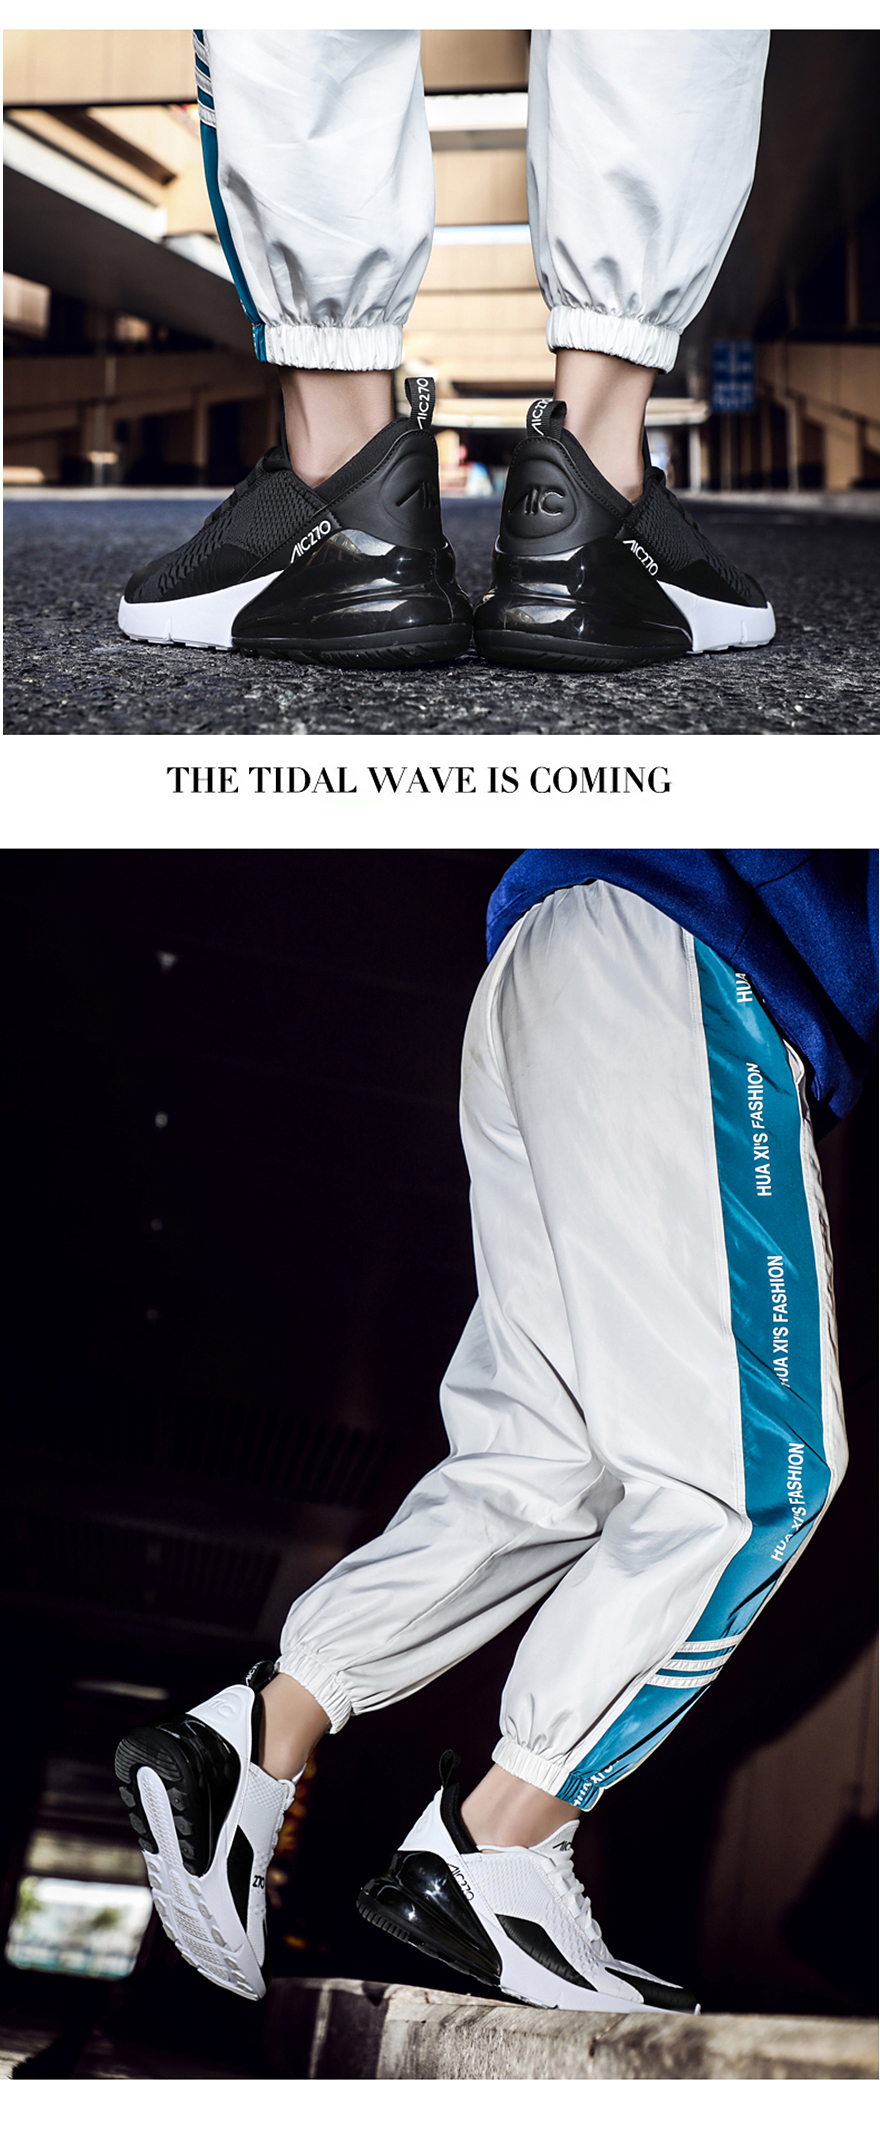 HTB1utf2RhTpK1RjSZFKq6y2wXXam 2019 Casual Shoes Men Lightweight Running Male Shoes Breathable Mesh Sport Men Sneakers Flat Outdoor Footwear Summer Trainers